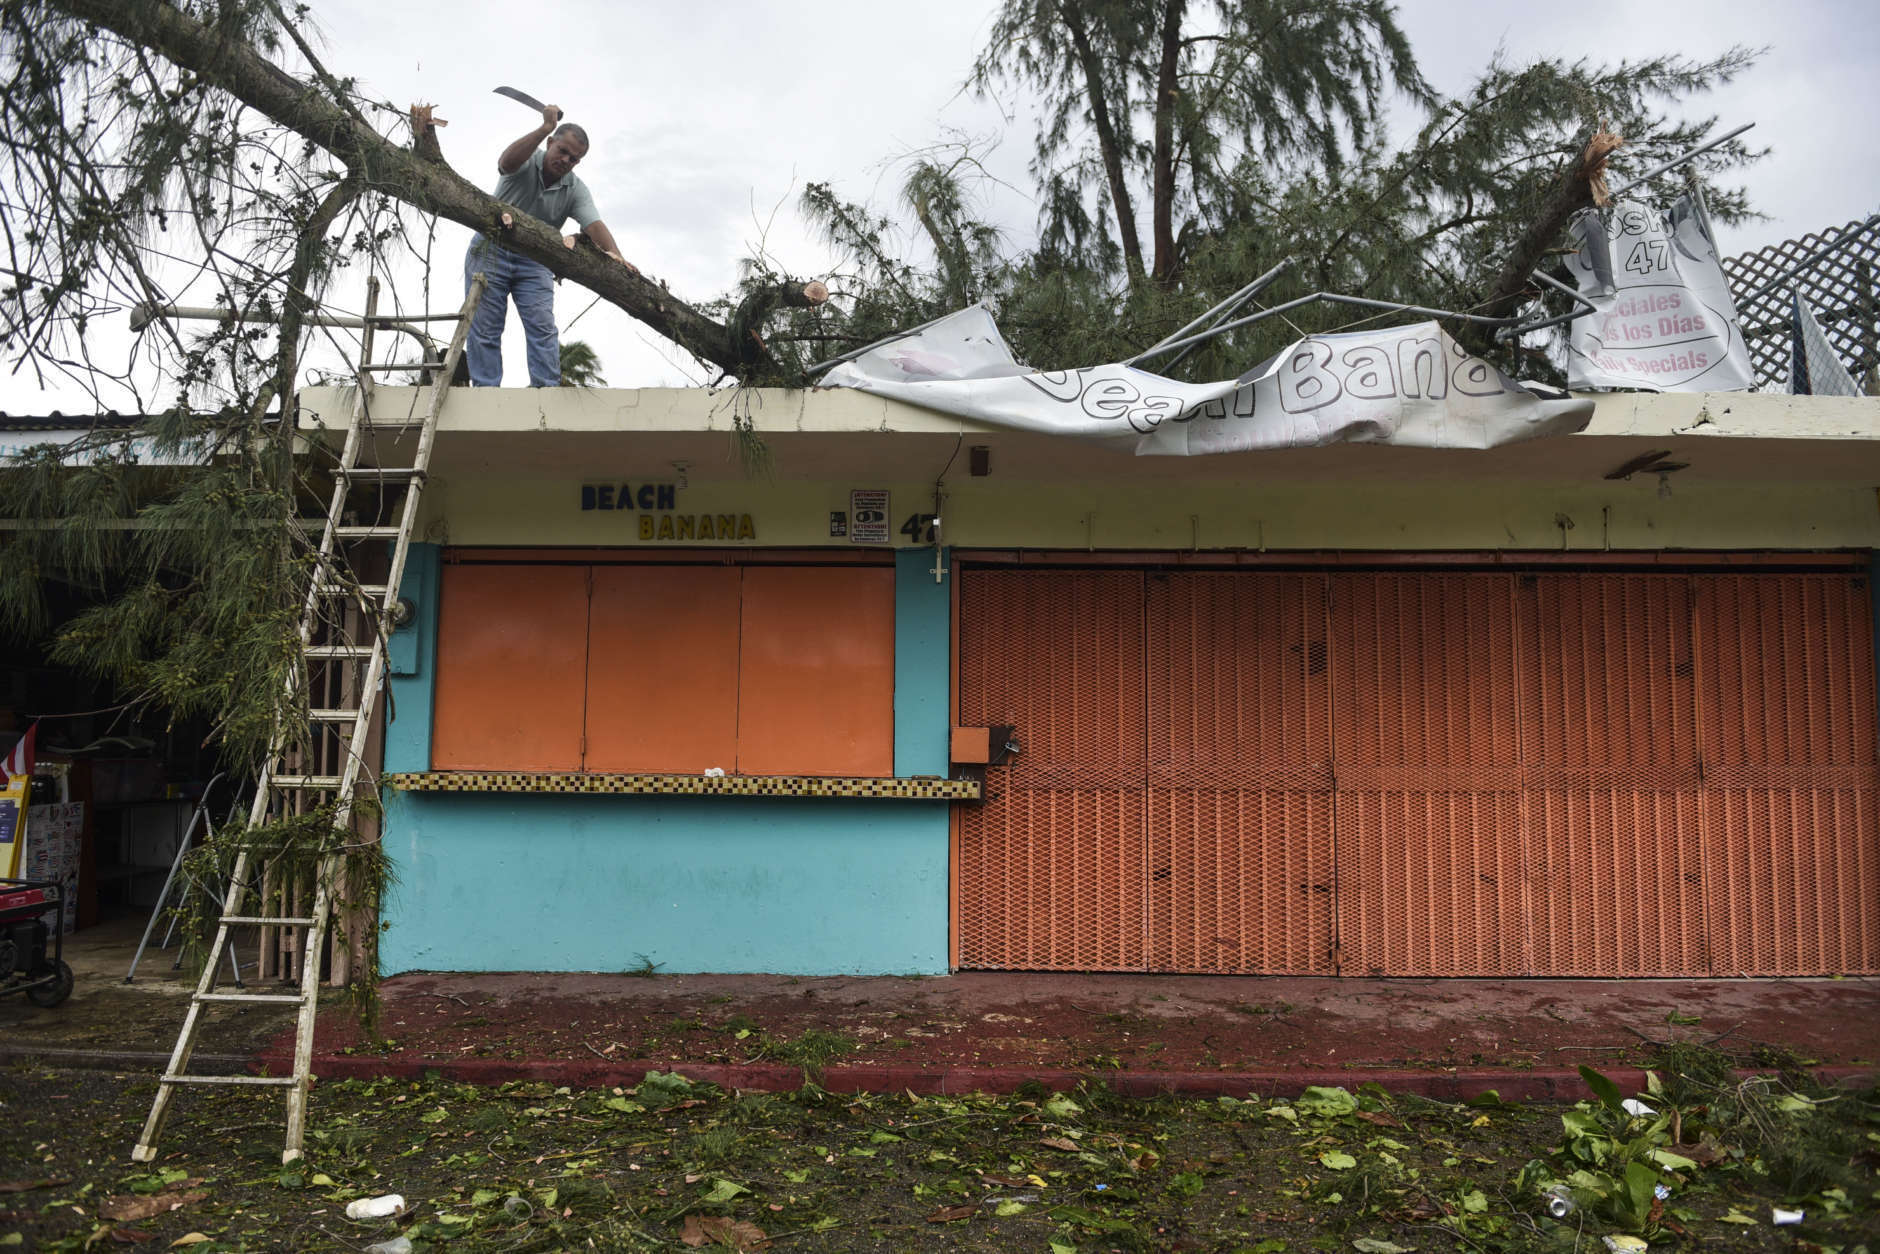 An employee works to remove a felled tree from a rooftop in the aftermath of Hurricane Irma, in Fajardo, Puerto Rico, Thursday, Sept. 7, 2017. Irma cut a path of devastation across the northern Caribbean, leaving at least 10 dead and thousands homeless after destroying buildings and uprooting trees. More than 1 million people in Puerto Rico are without power. (AP Photo/Carlos Giusti)